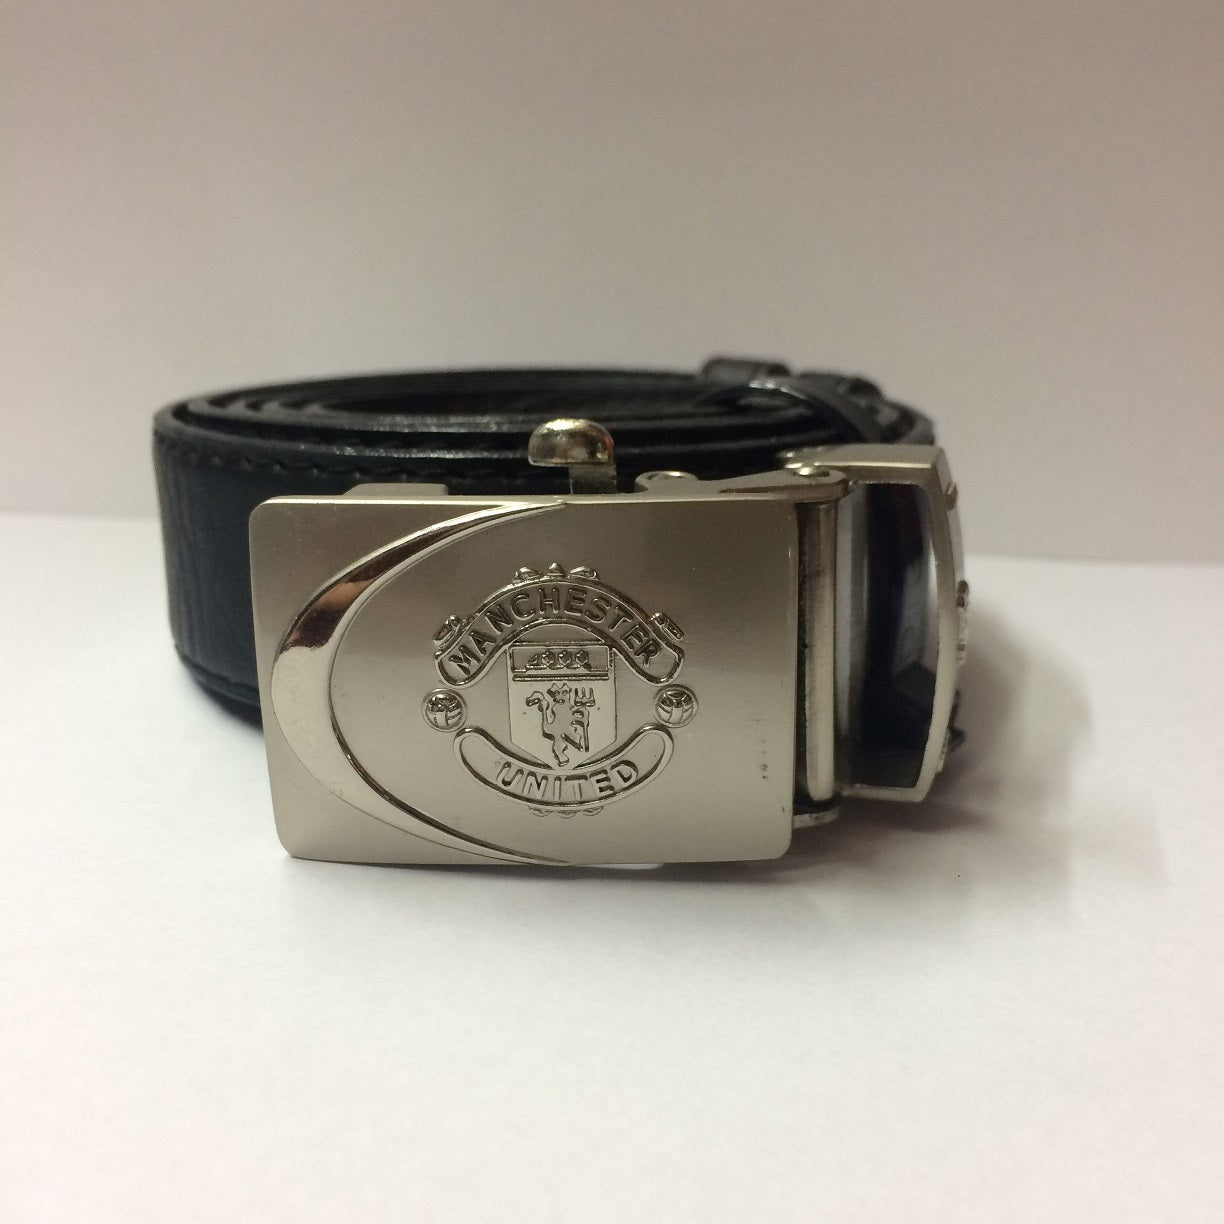 Manchester United Men's Dress Belt